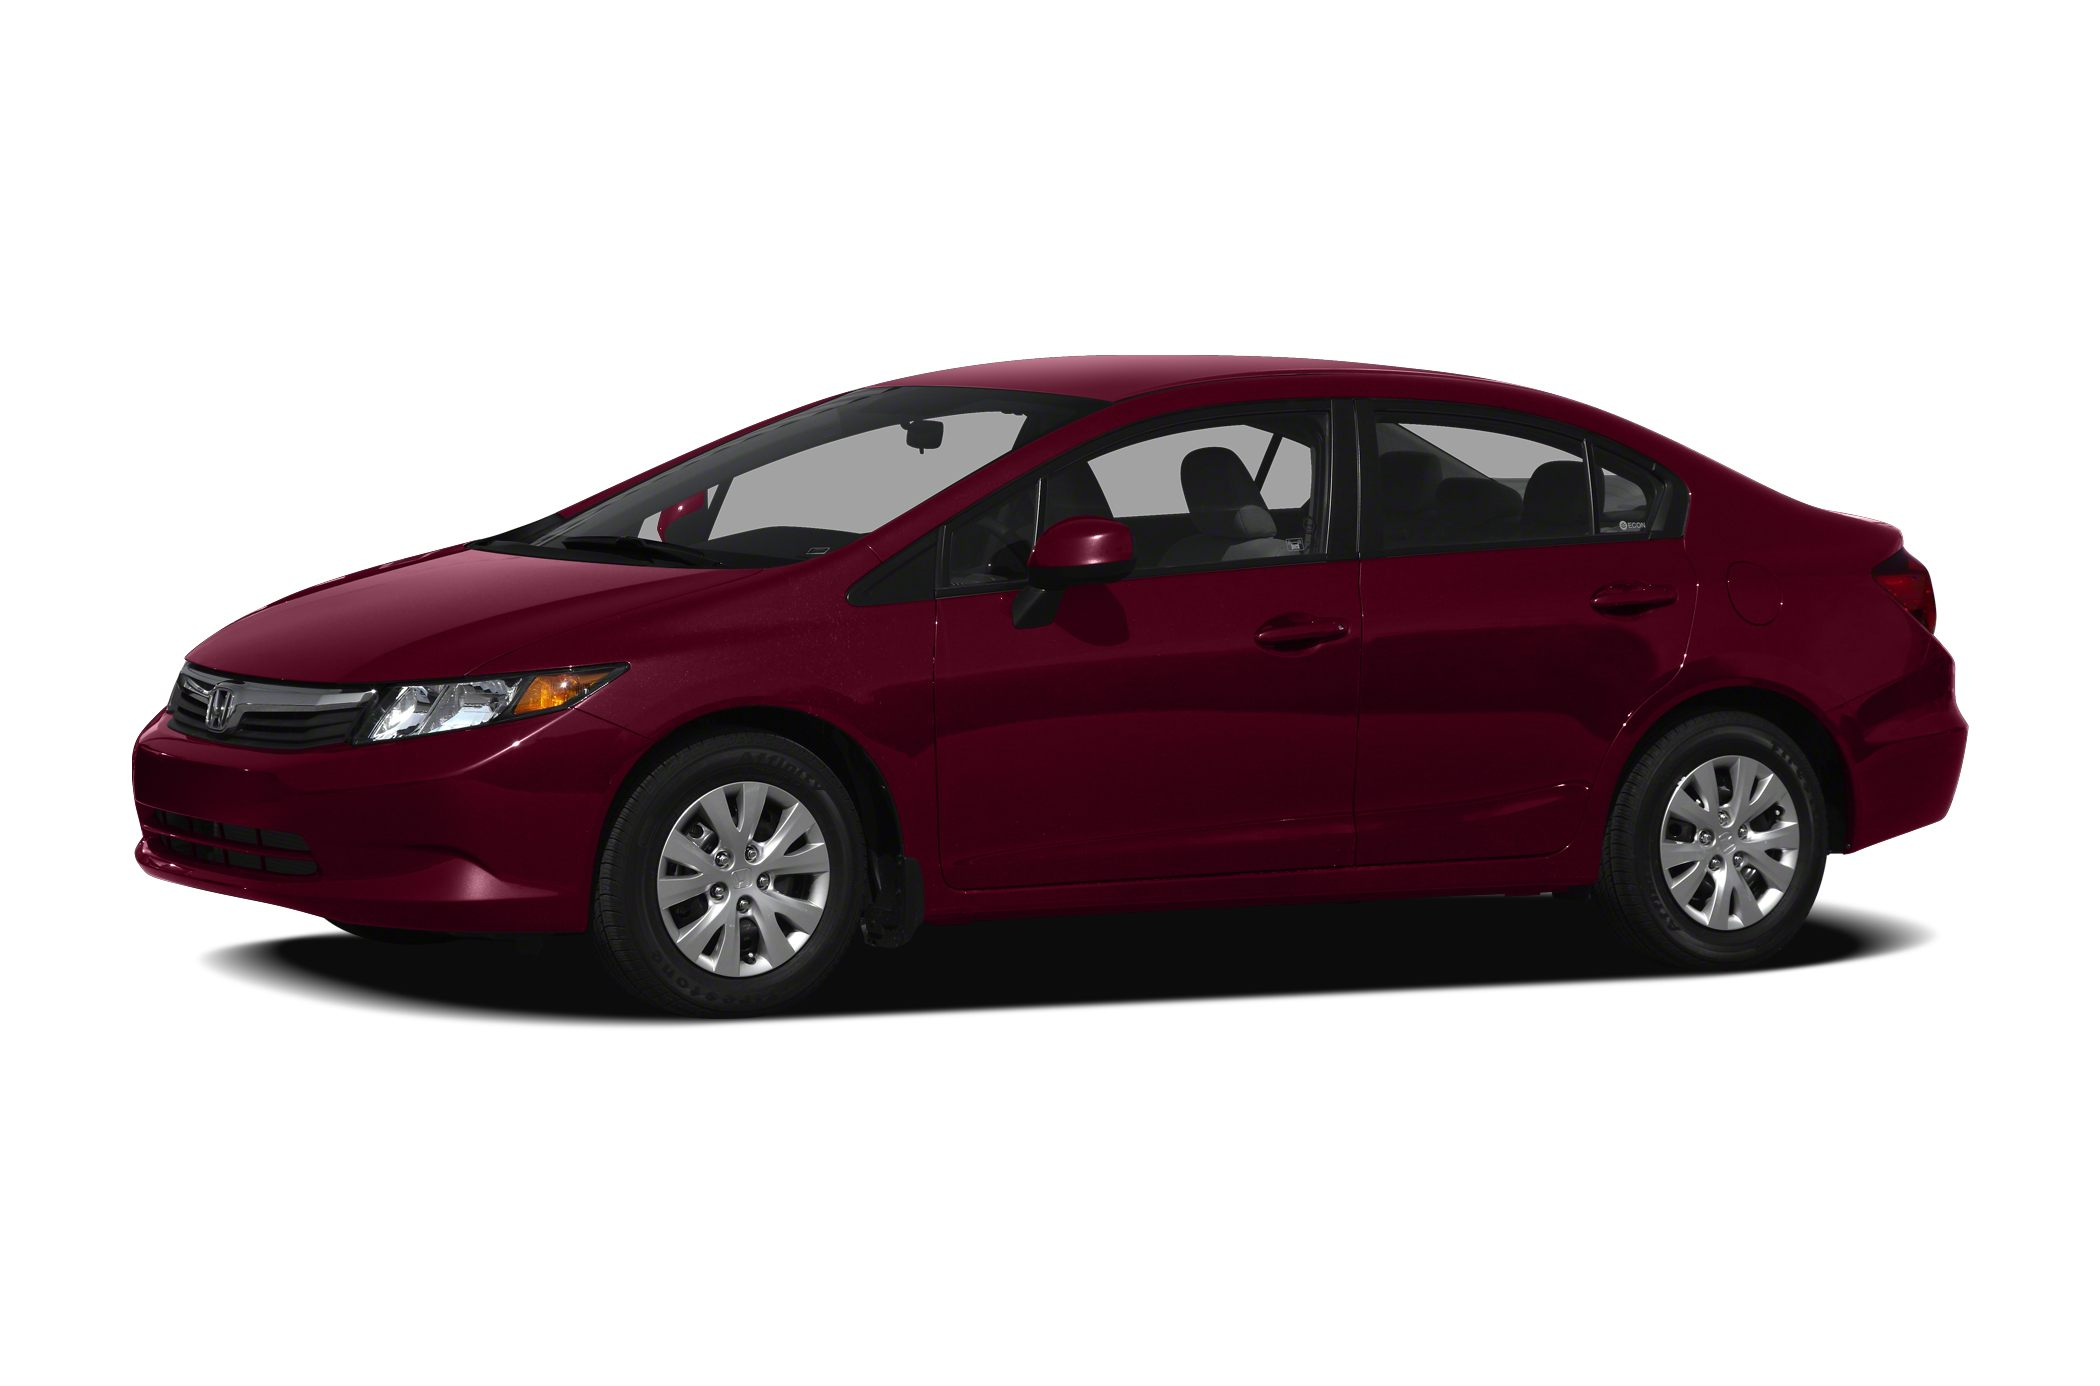 2012 Honda Civic LX Sedan for sale in Cincinnati for $14,495 with 36,045 miles